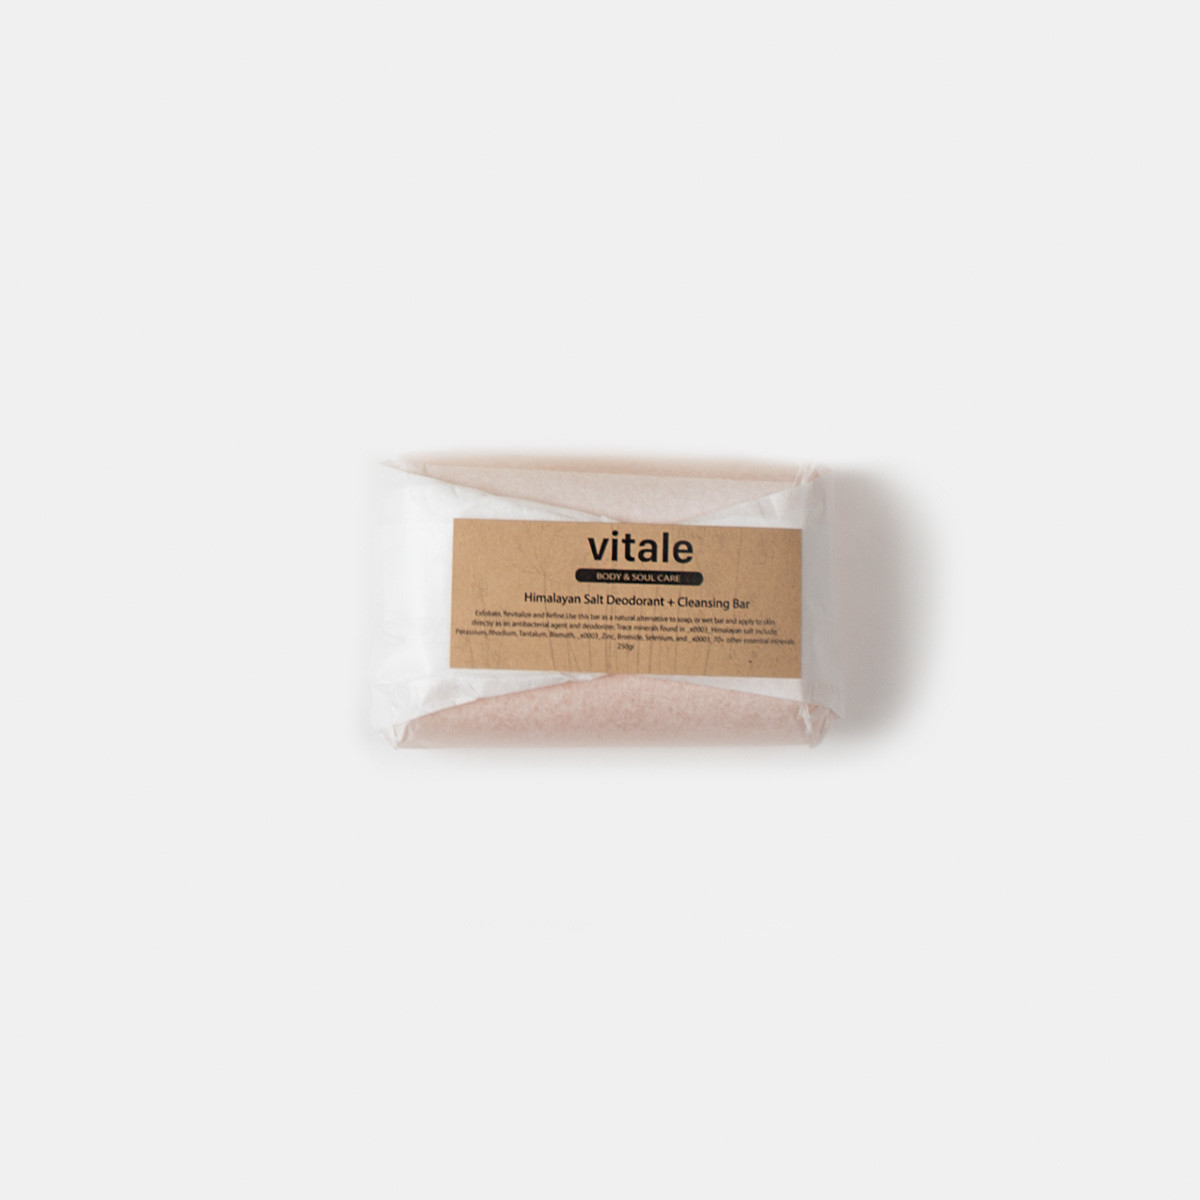 Himalayan Salt Deodorant + Cleansing Bar